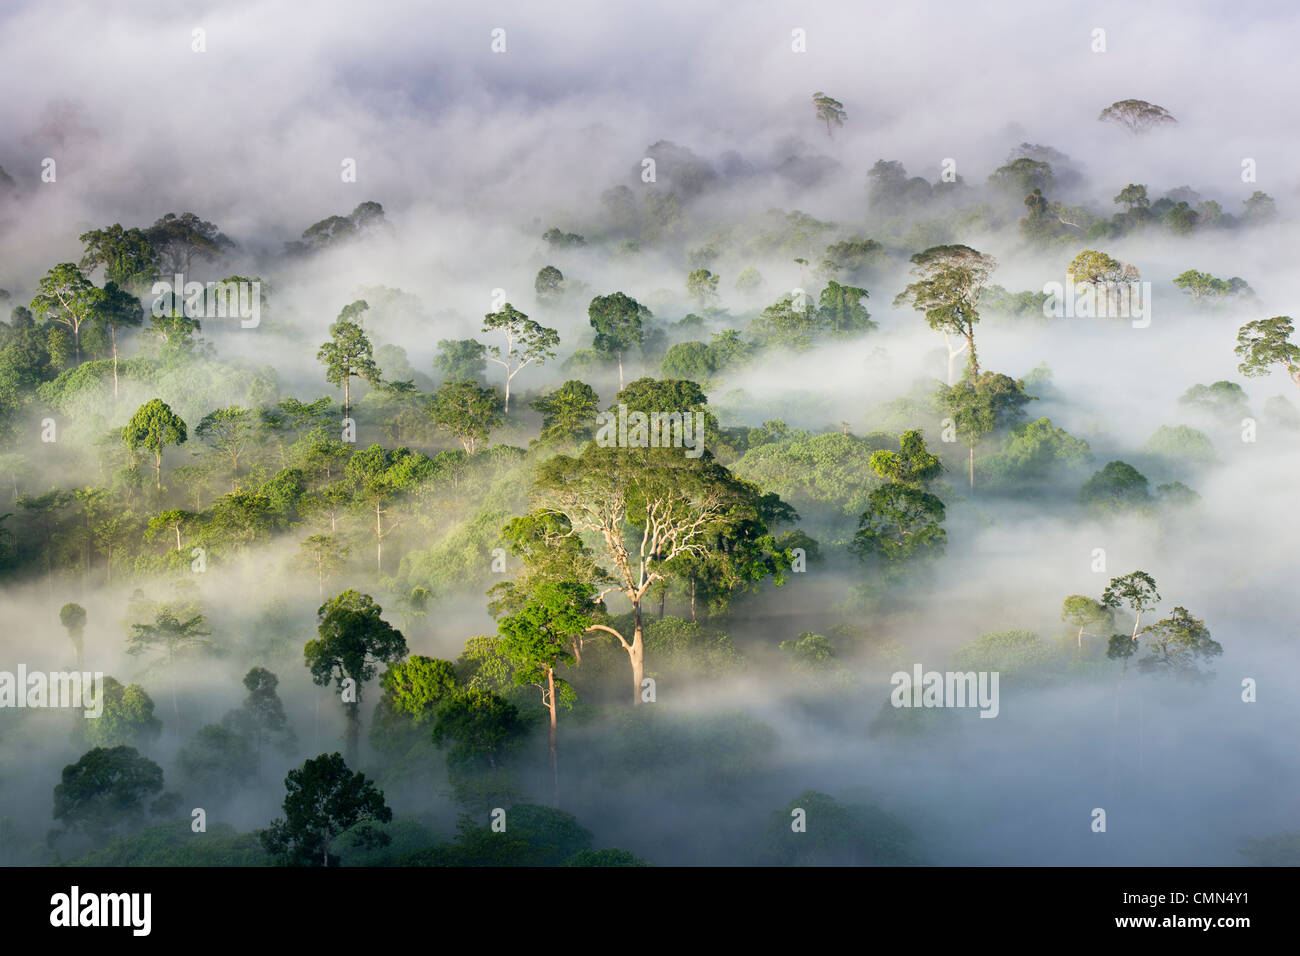 Mist and low cloud hanging over Lowland Dipterocarp Rainforest, just after sunrise. Heart of Danum Valley, Sabah, Stock Photo